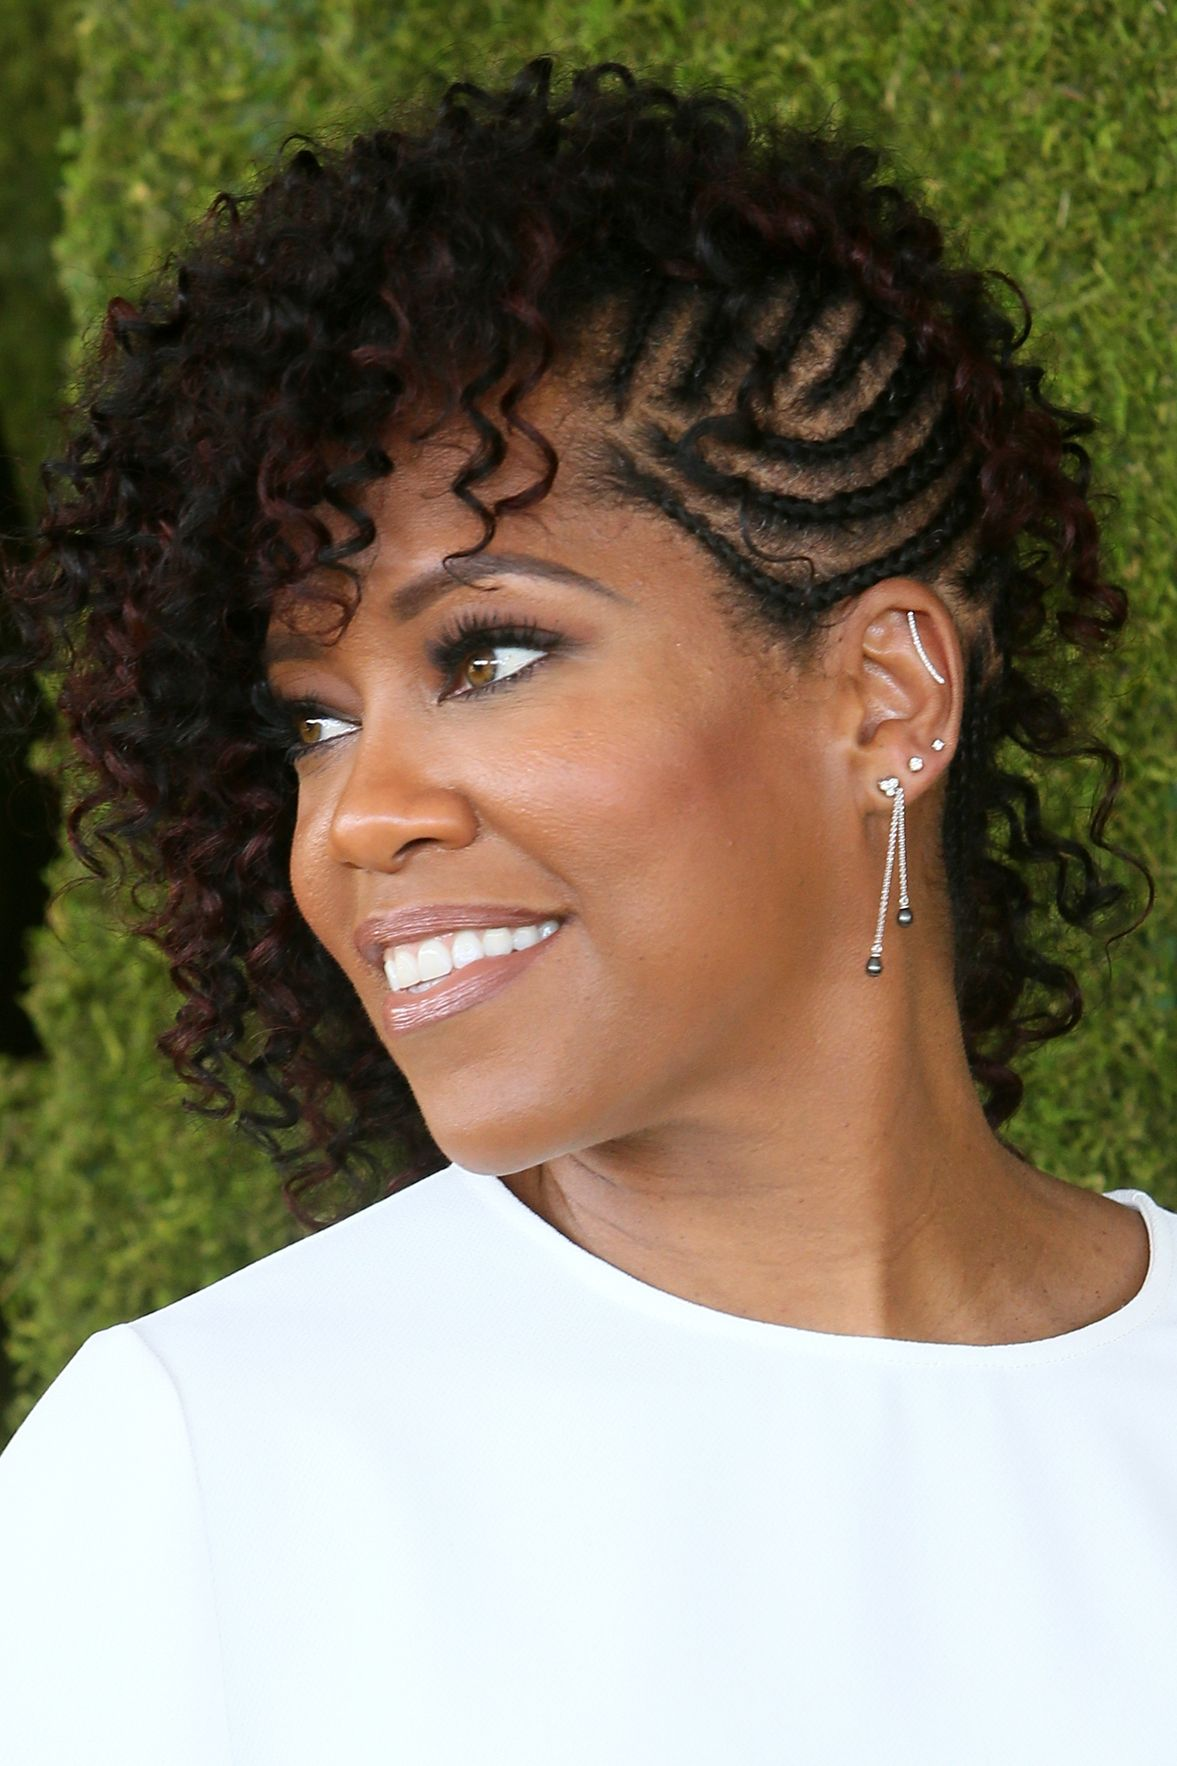 Brunette-Cornrows-with-Black-Curly-Thin-Strands Short Hairstyles for Black Girls to Look Flawless